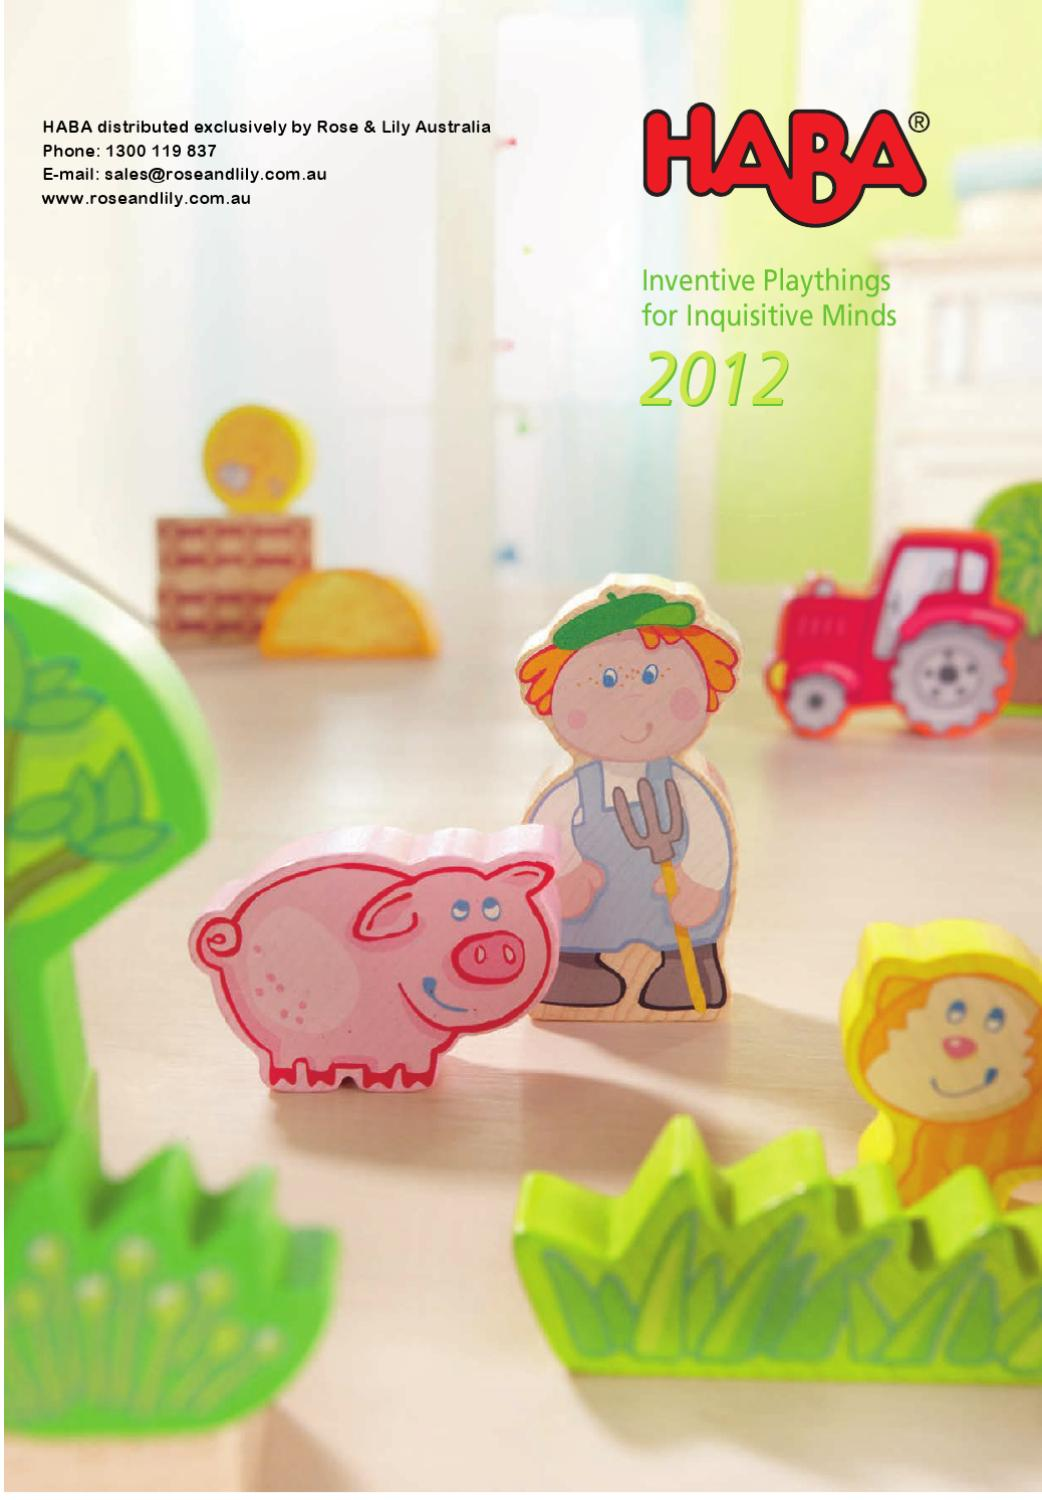 2012 Haba Toy Catalogue by Rose and Lily Australia - issuu 1c7960127c29